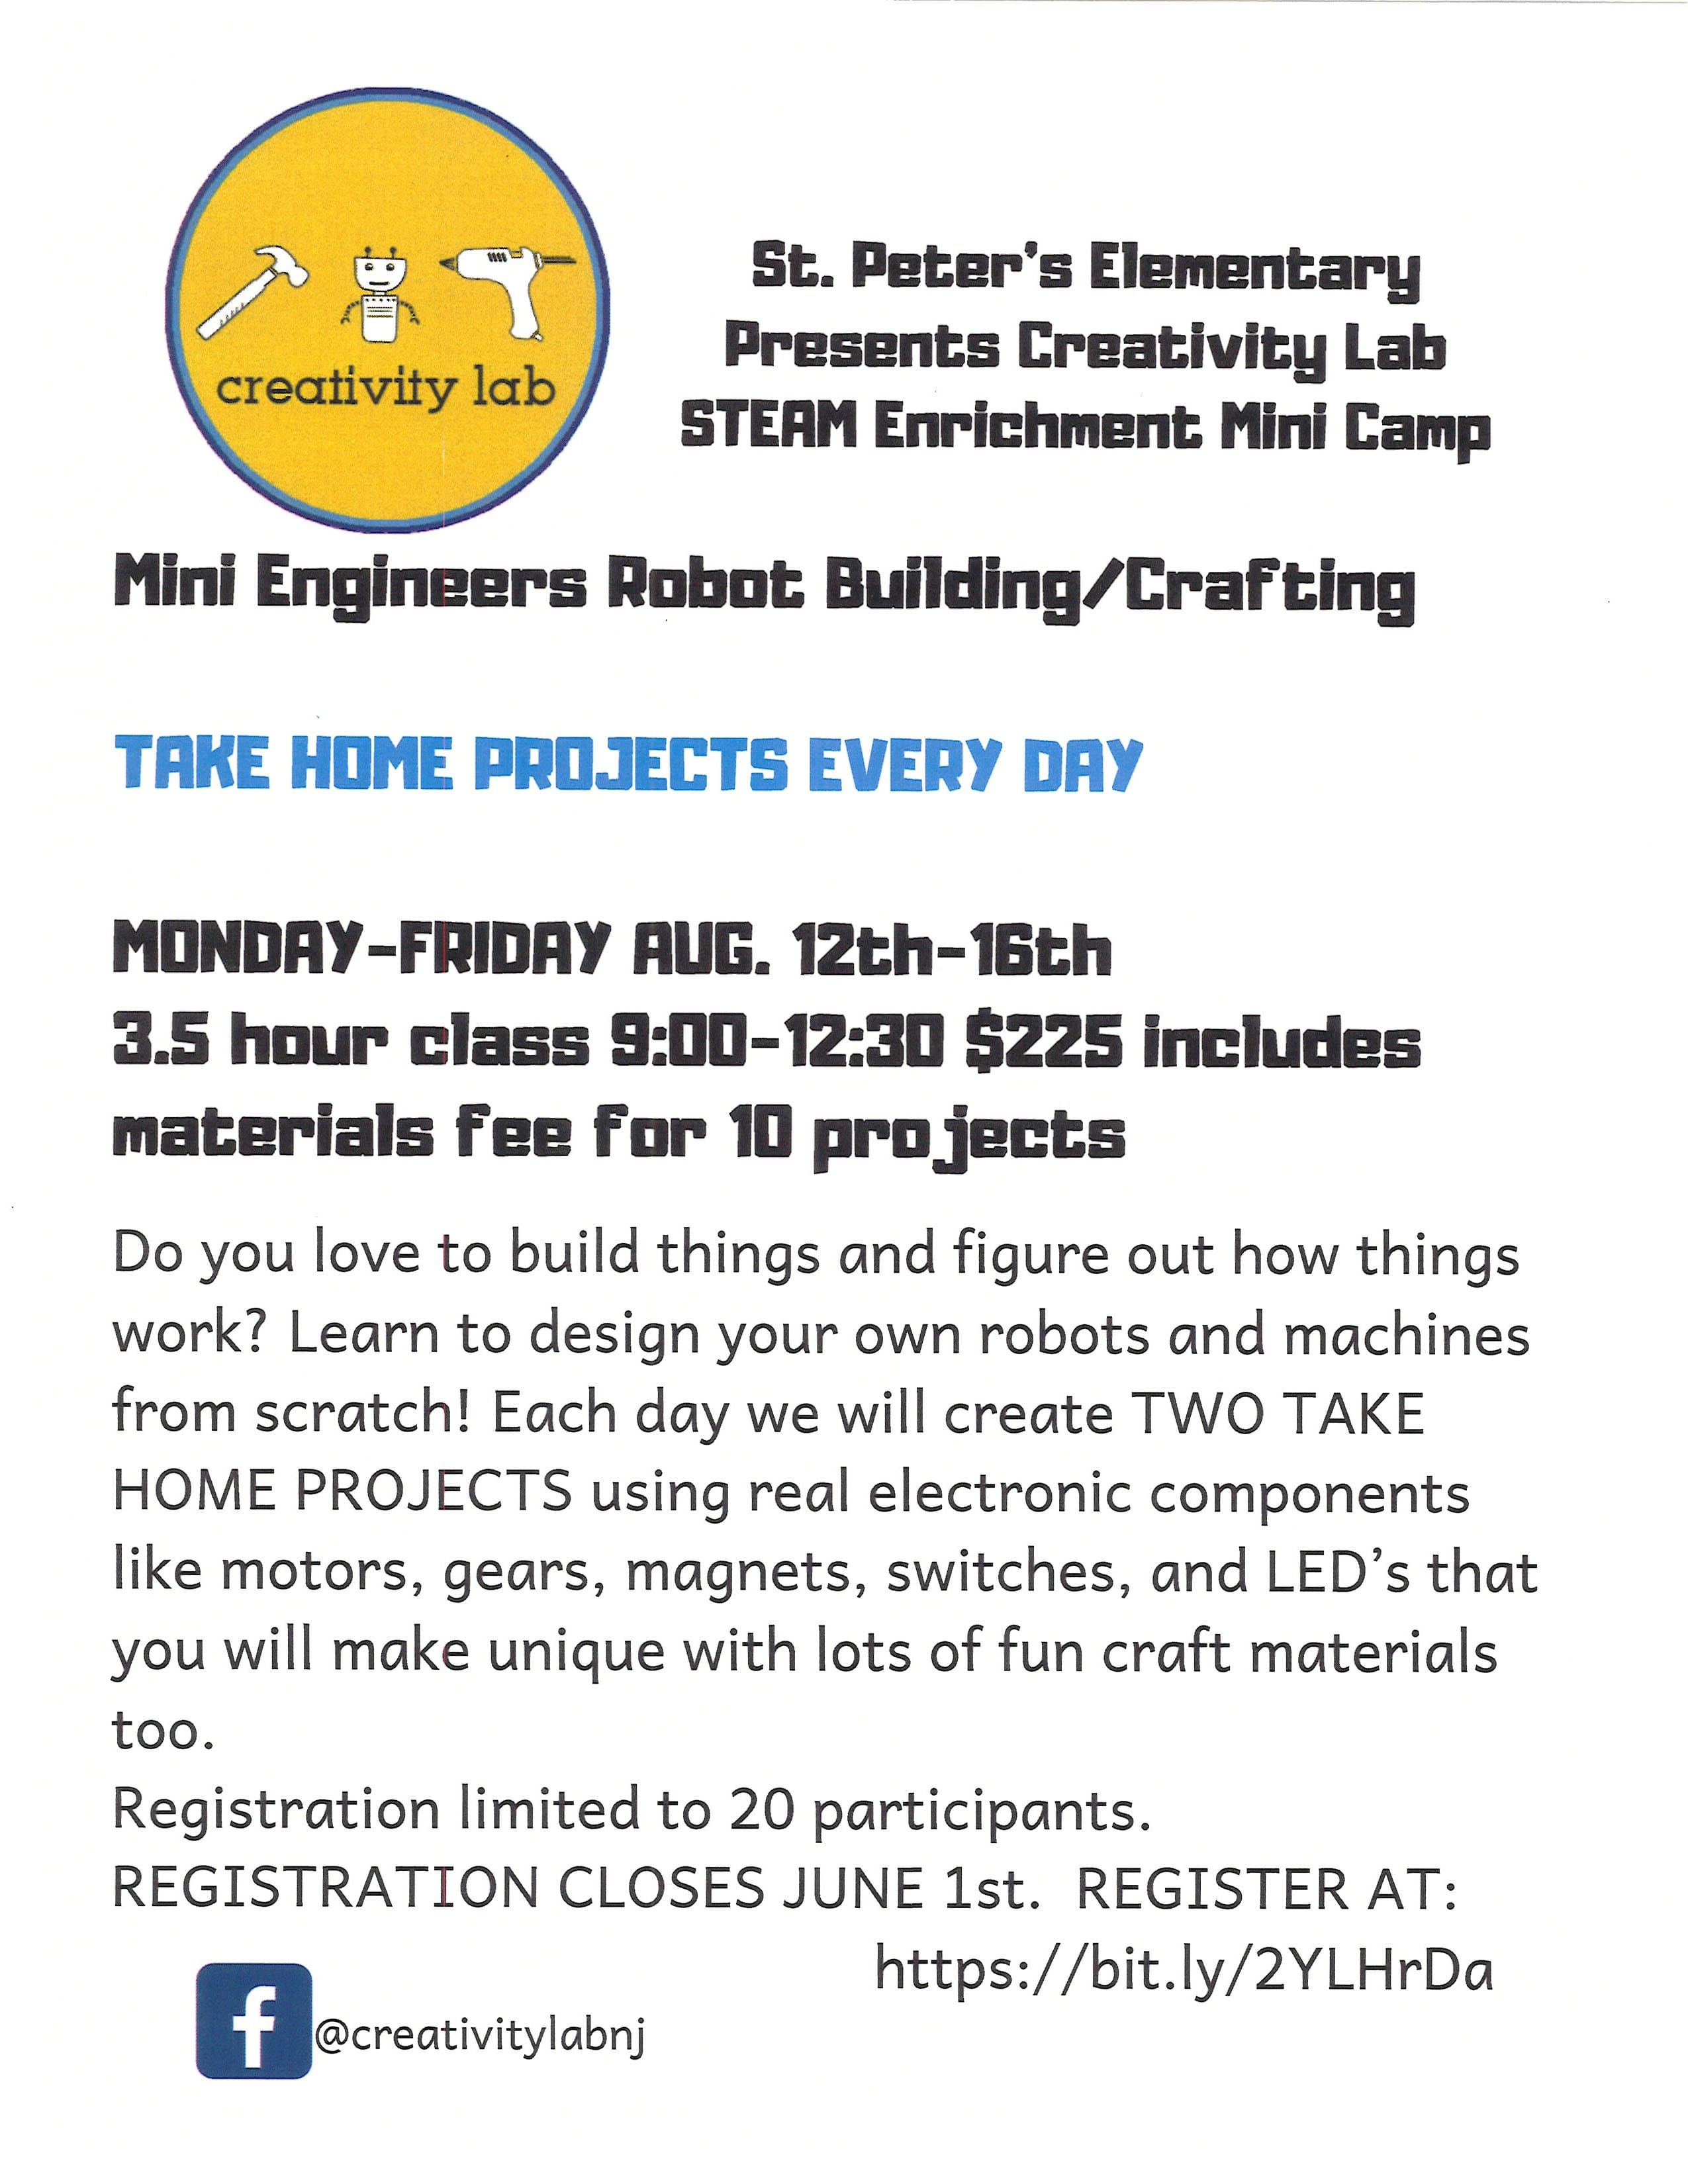 Mini Engineers, Robot Building/Crafting